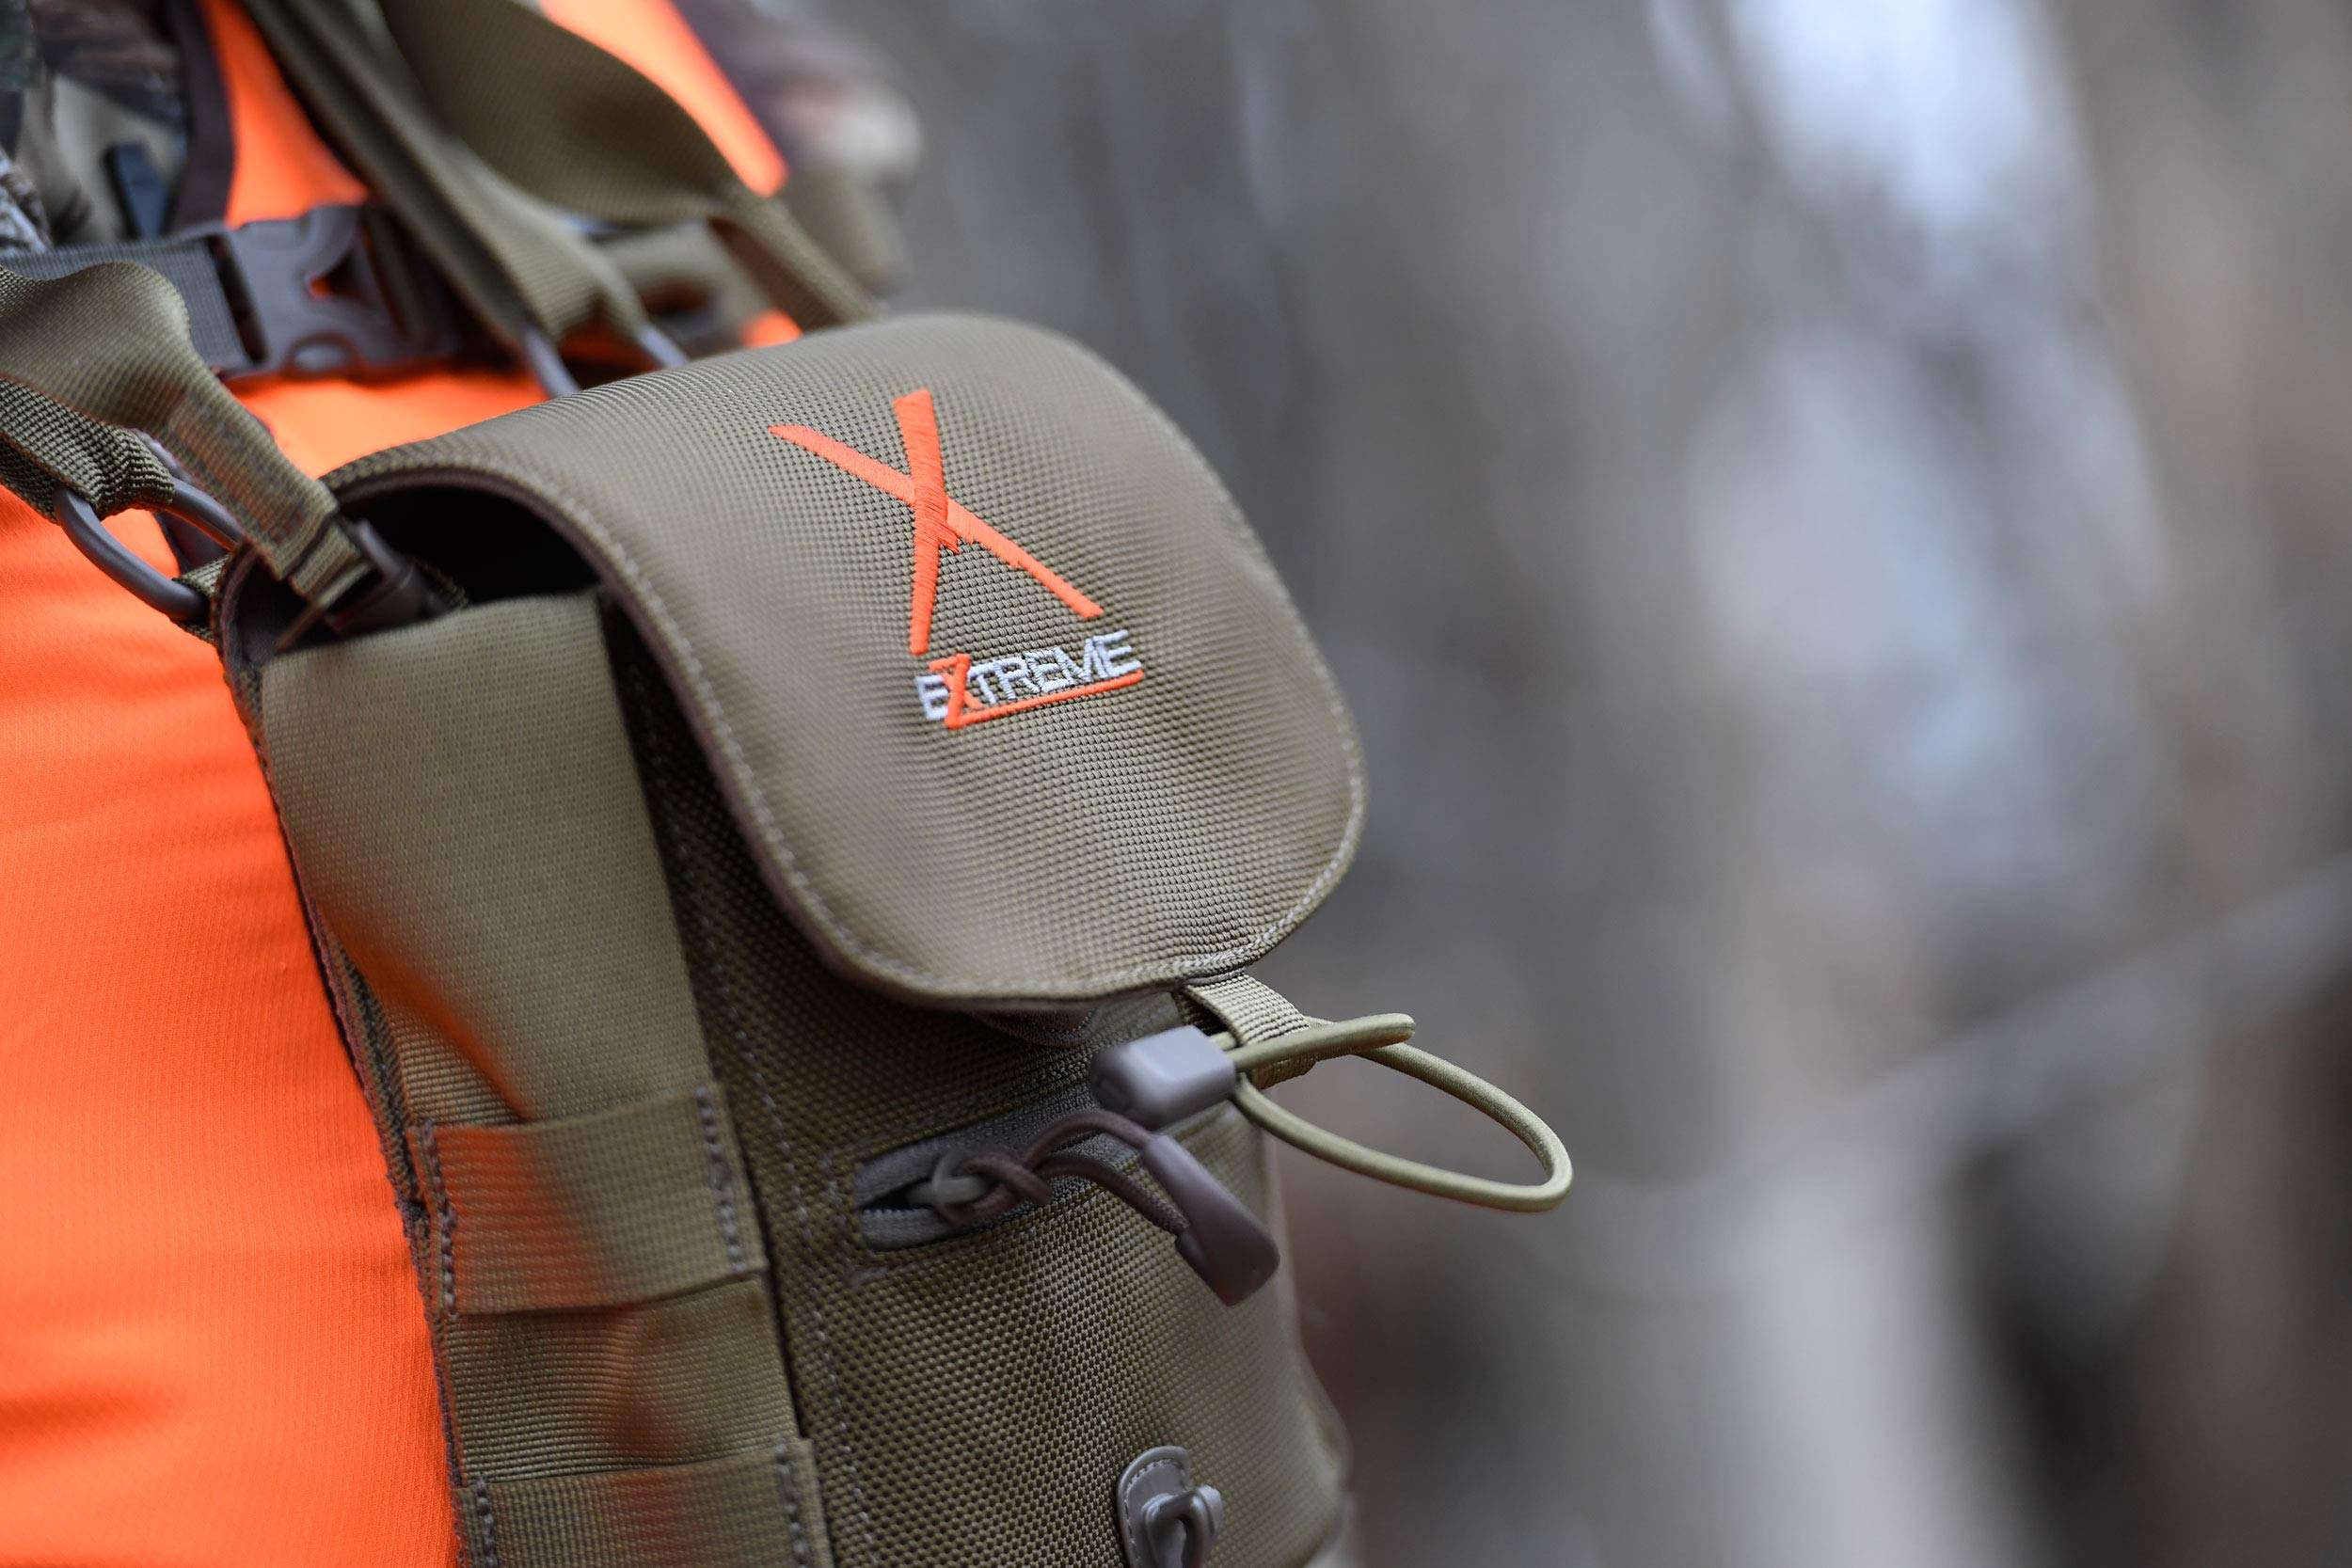 ALPS OutdoorZ Extreme Bino Harness X, Cervidae by ALPS OutdoorZ (Image #13)